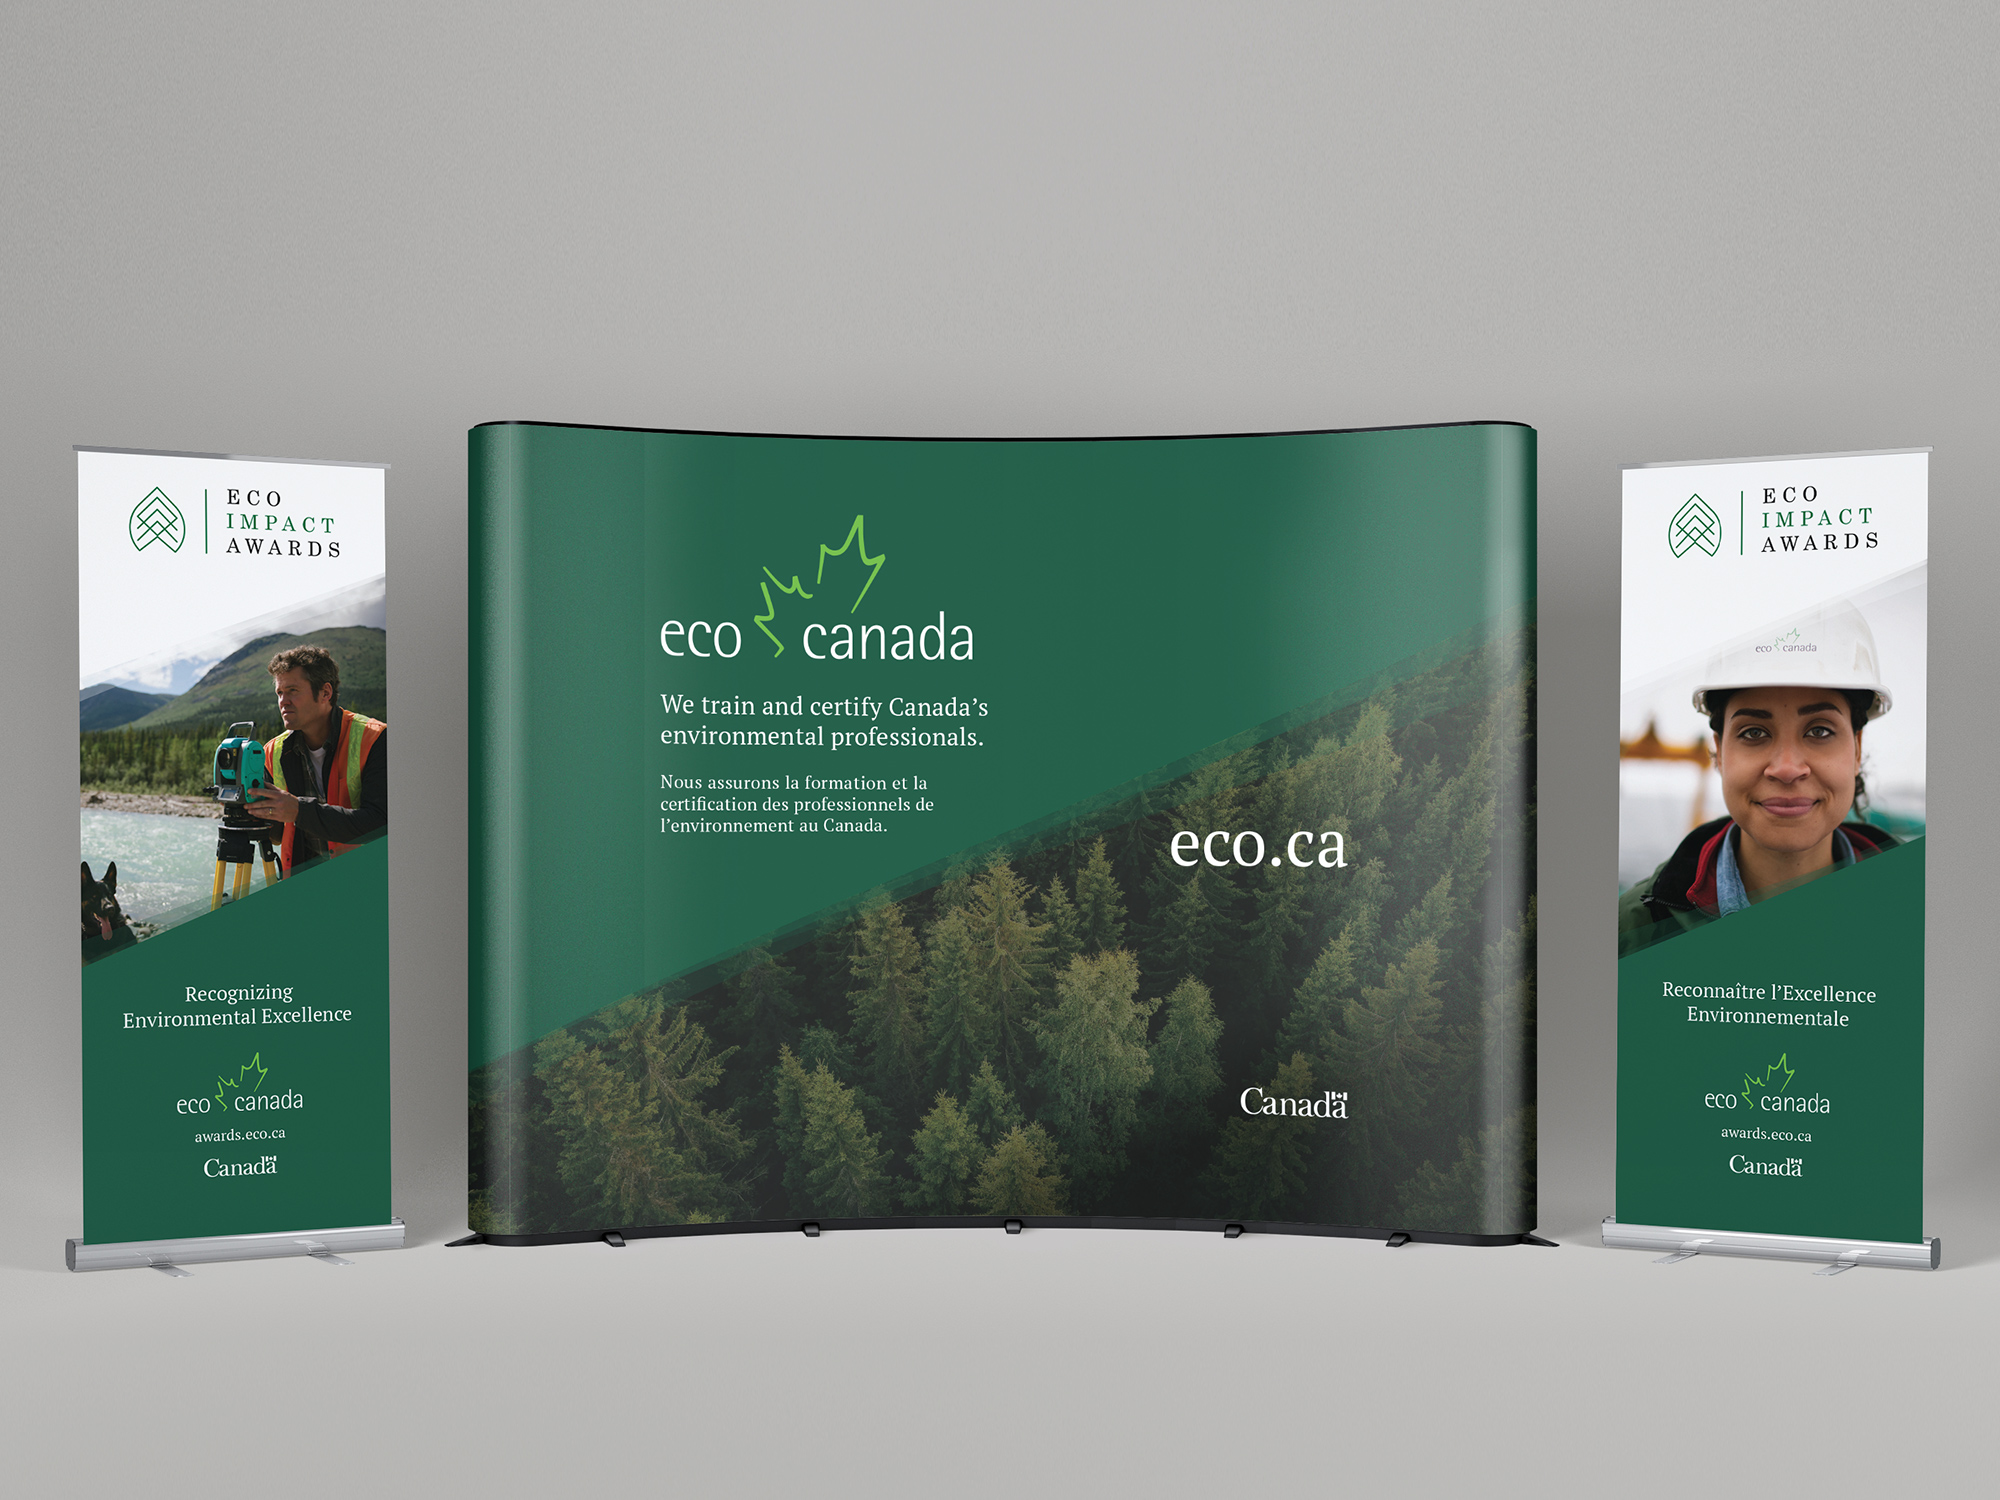 Trade show booth and pop-up banner design for ECO Canada.